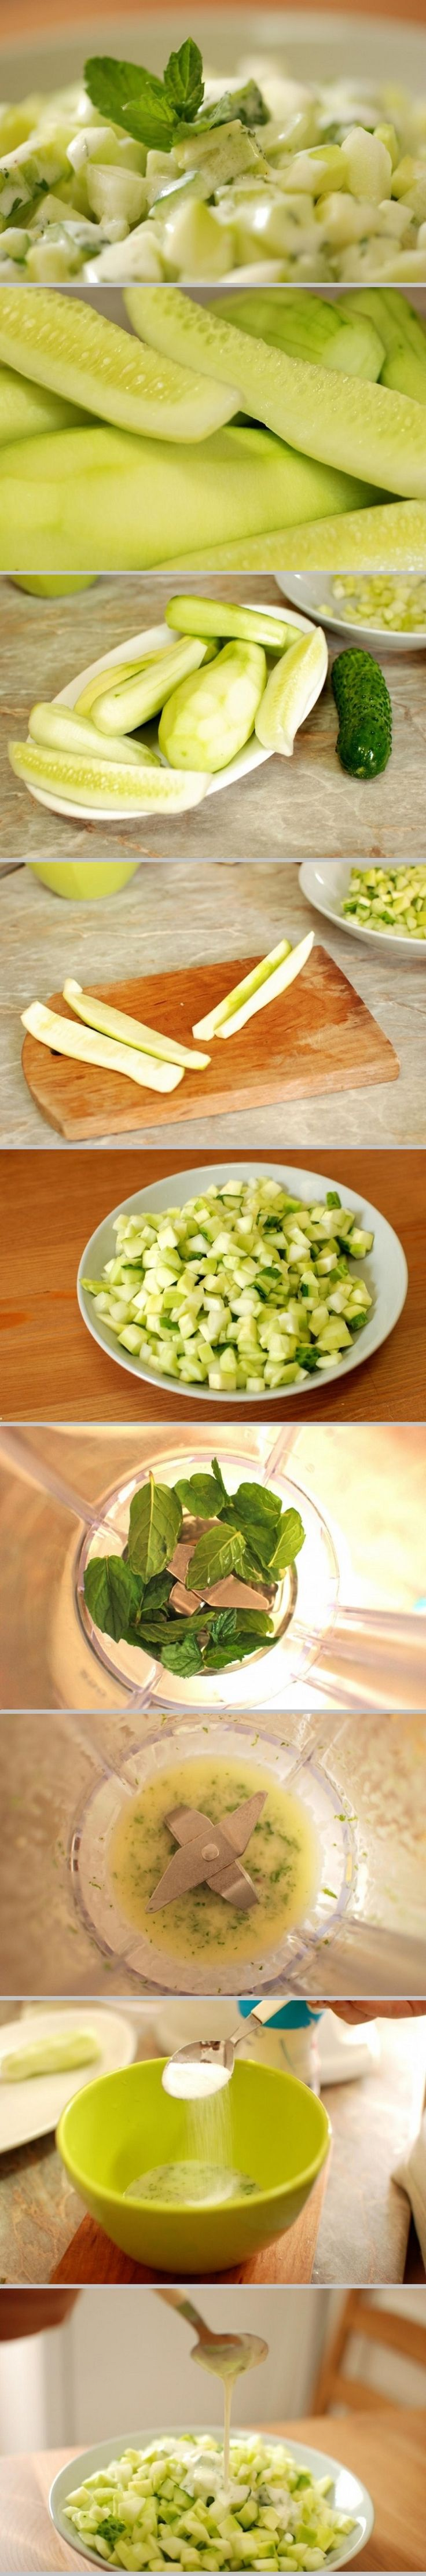 Cucumber Salad with Yogurt Sauce Recipe Desserts Salad, Yogurt Sauces ...